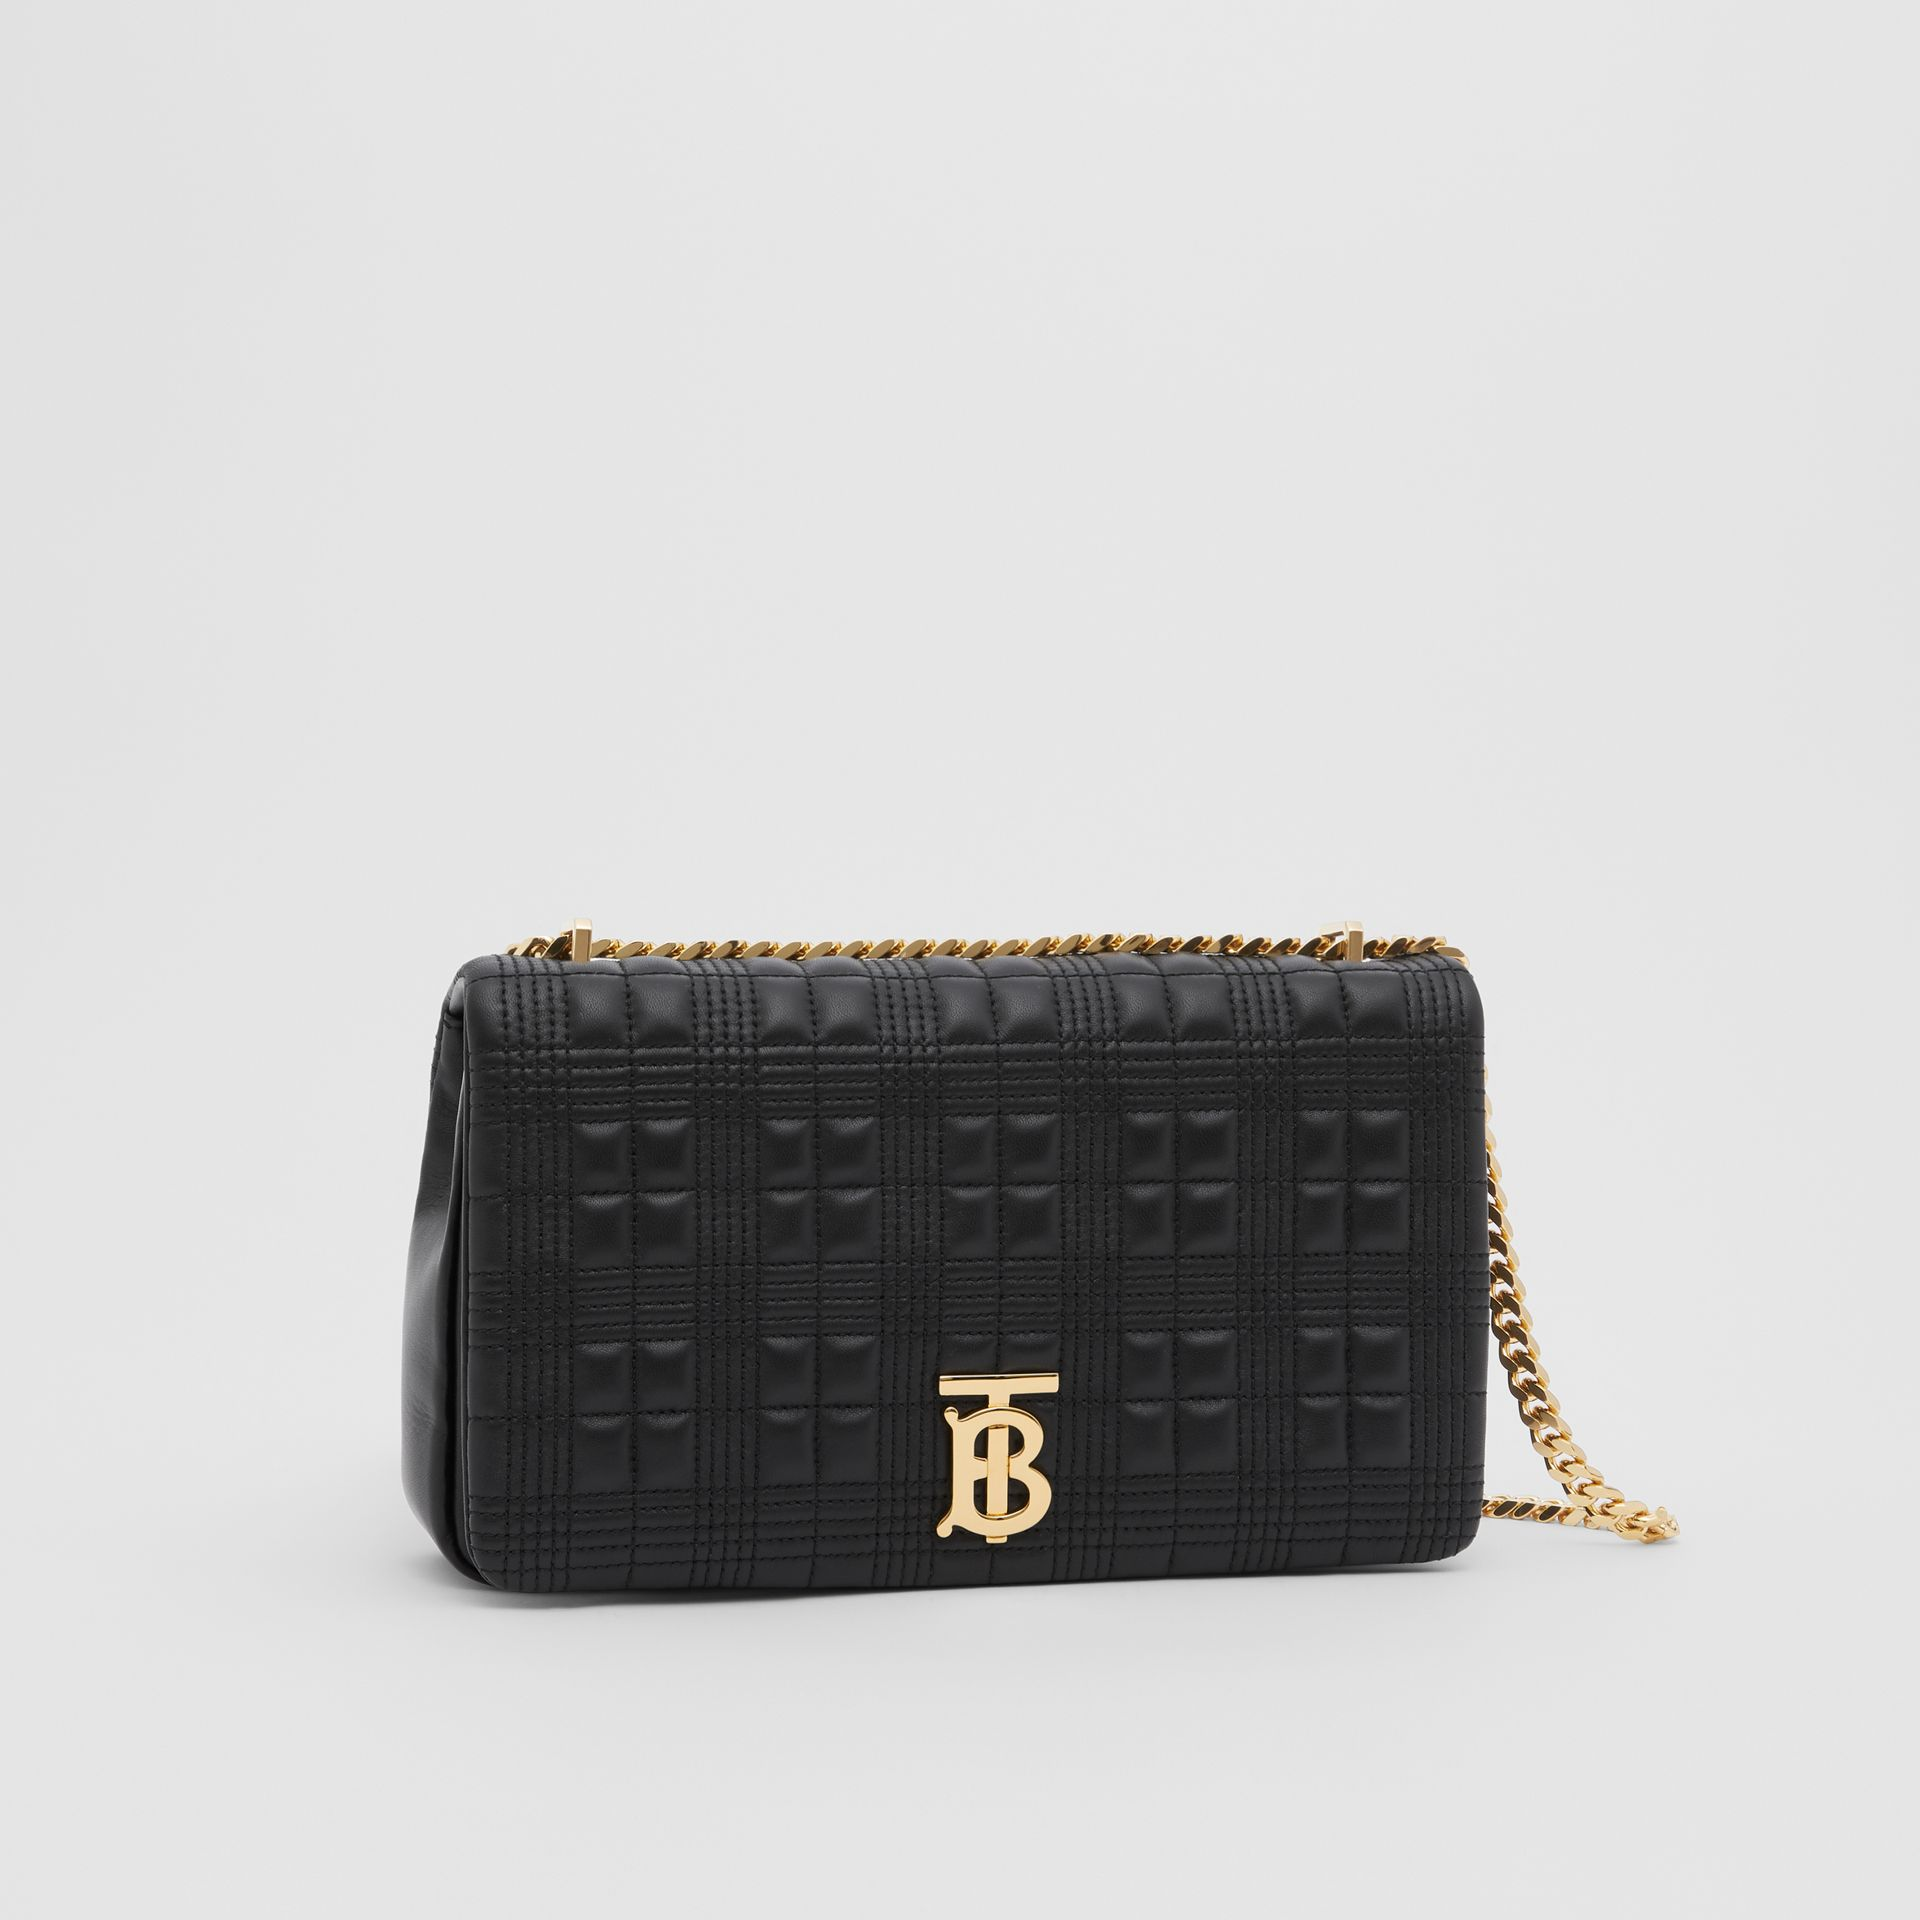 Medium Quilted Check Lambskin Lola Bag in Black - Women | Burberry United Kingdom - gallery image 4